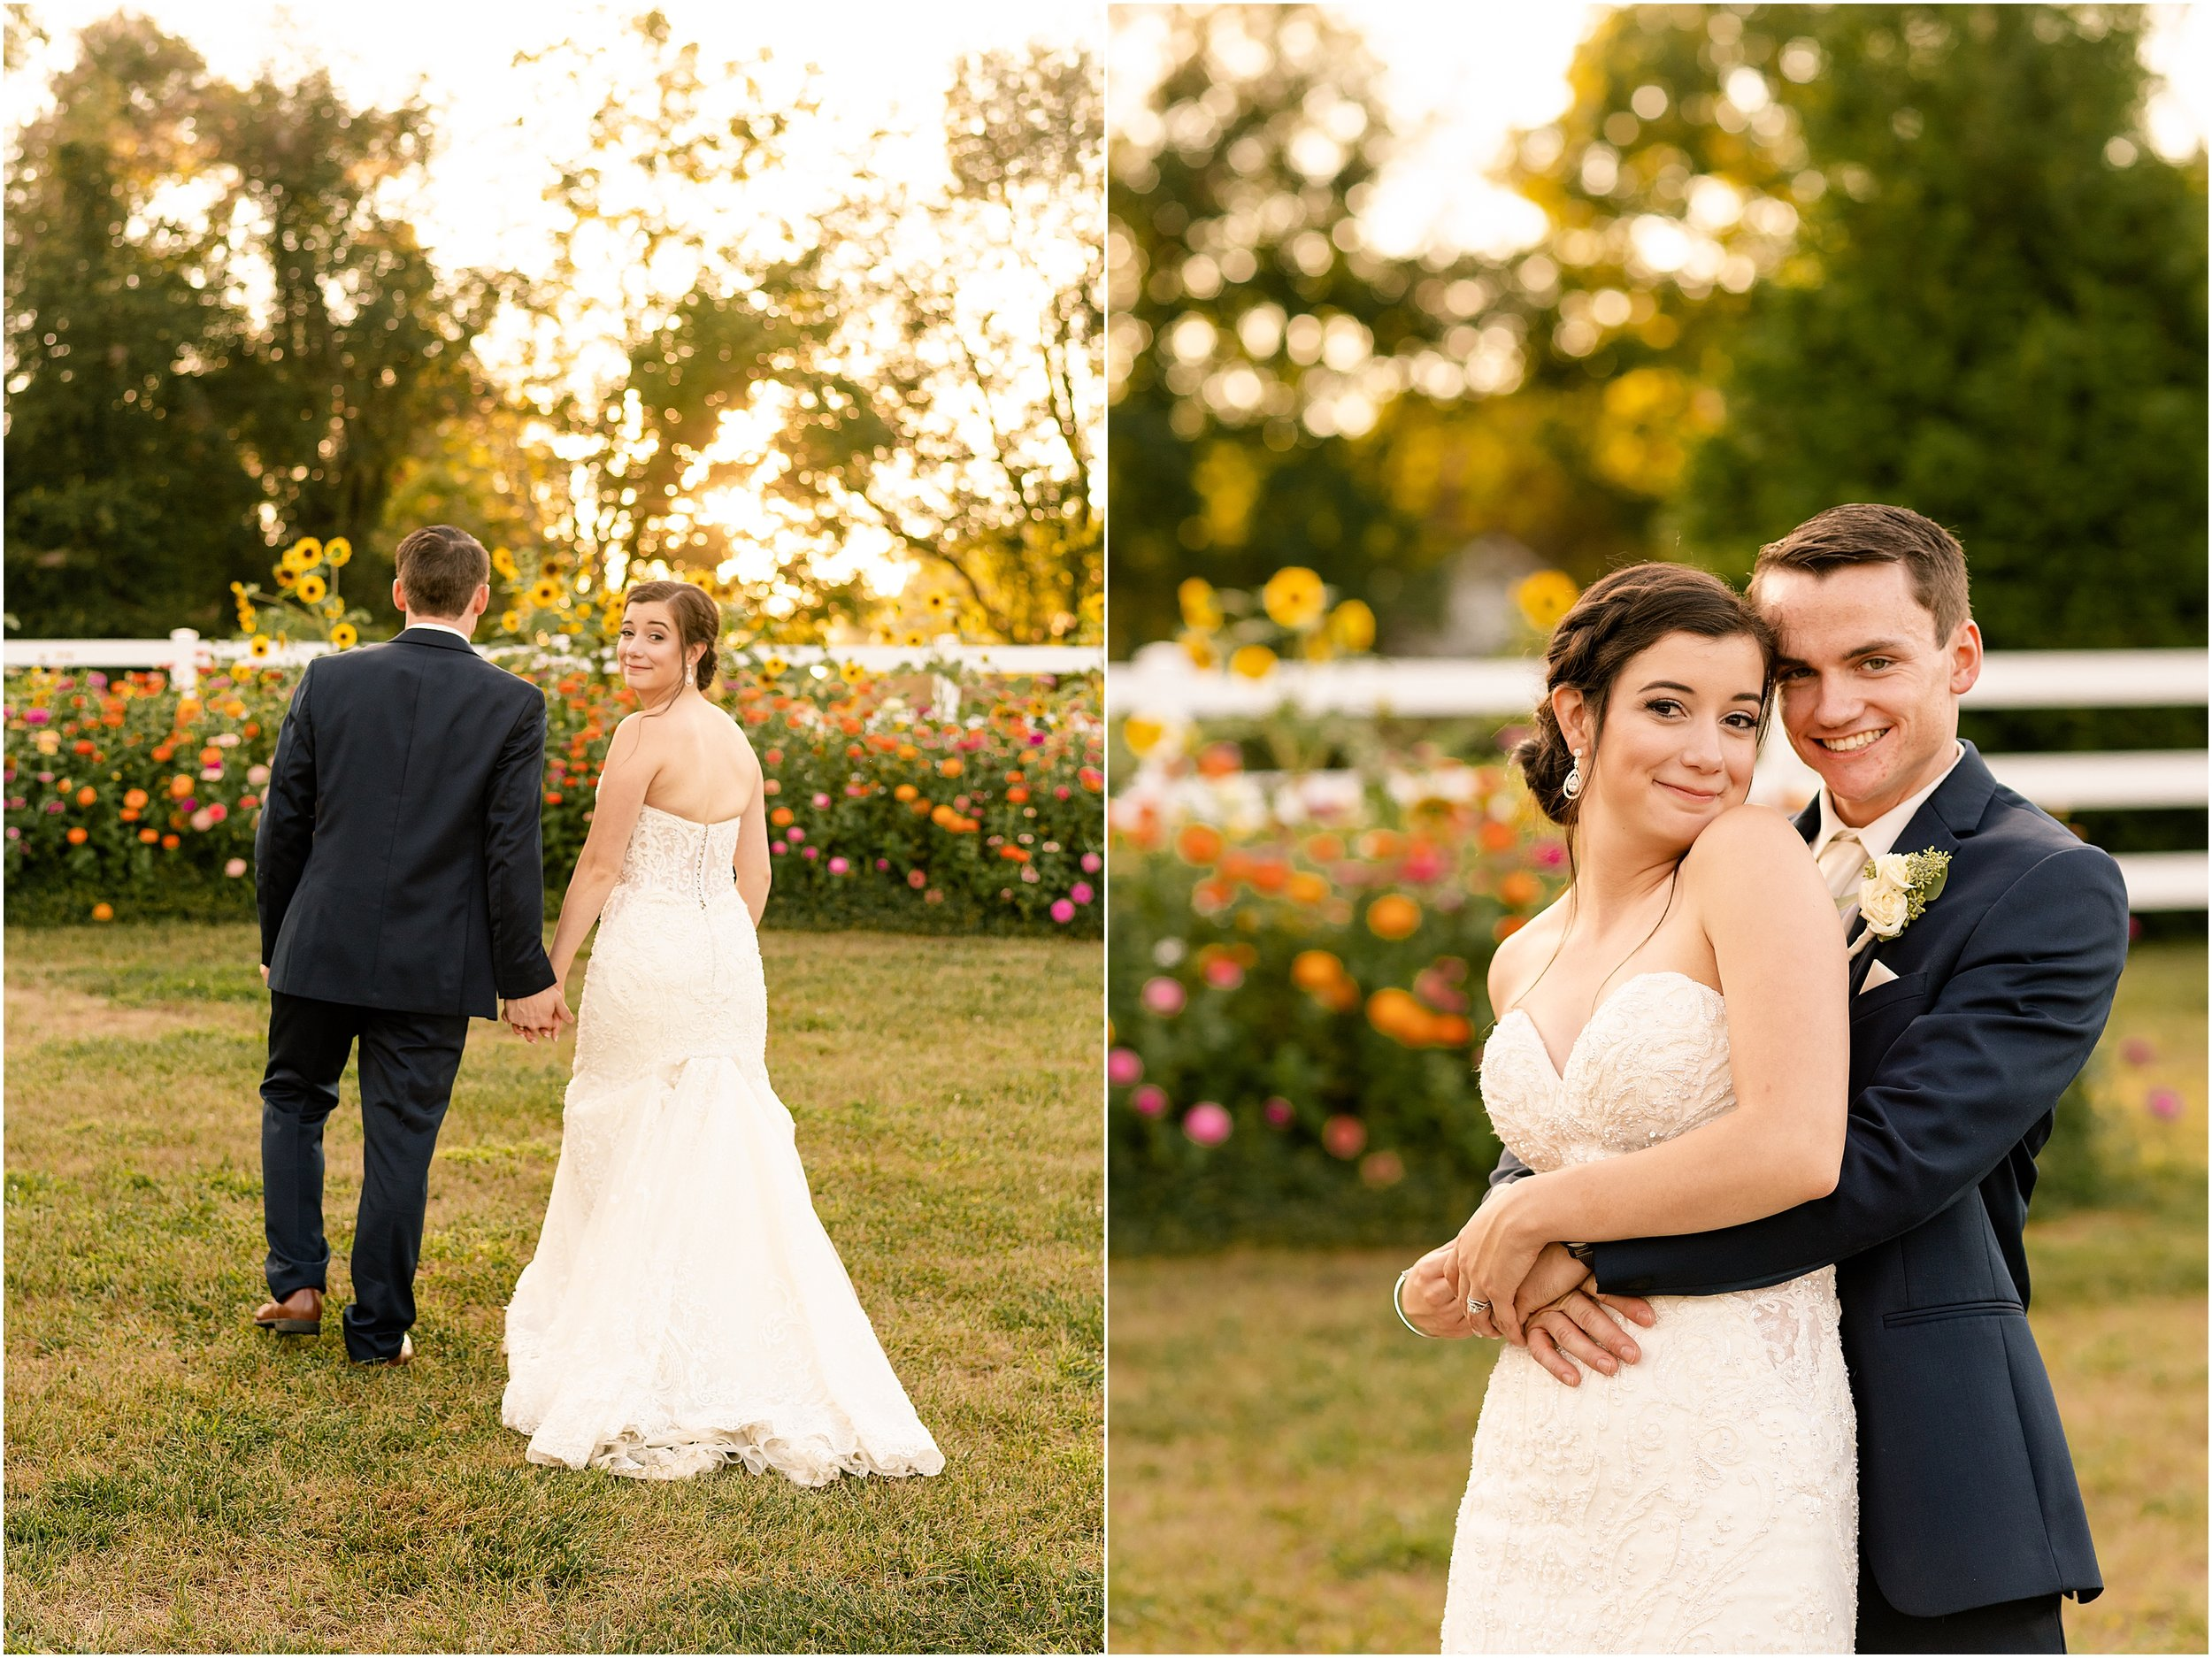 hannah leigh photography Pond View Farm Wedding White Hall MD_3673.jpg